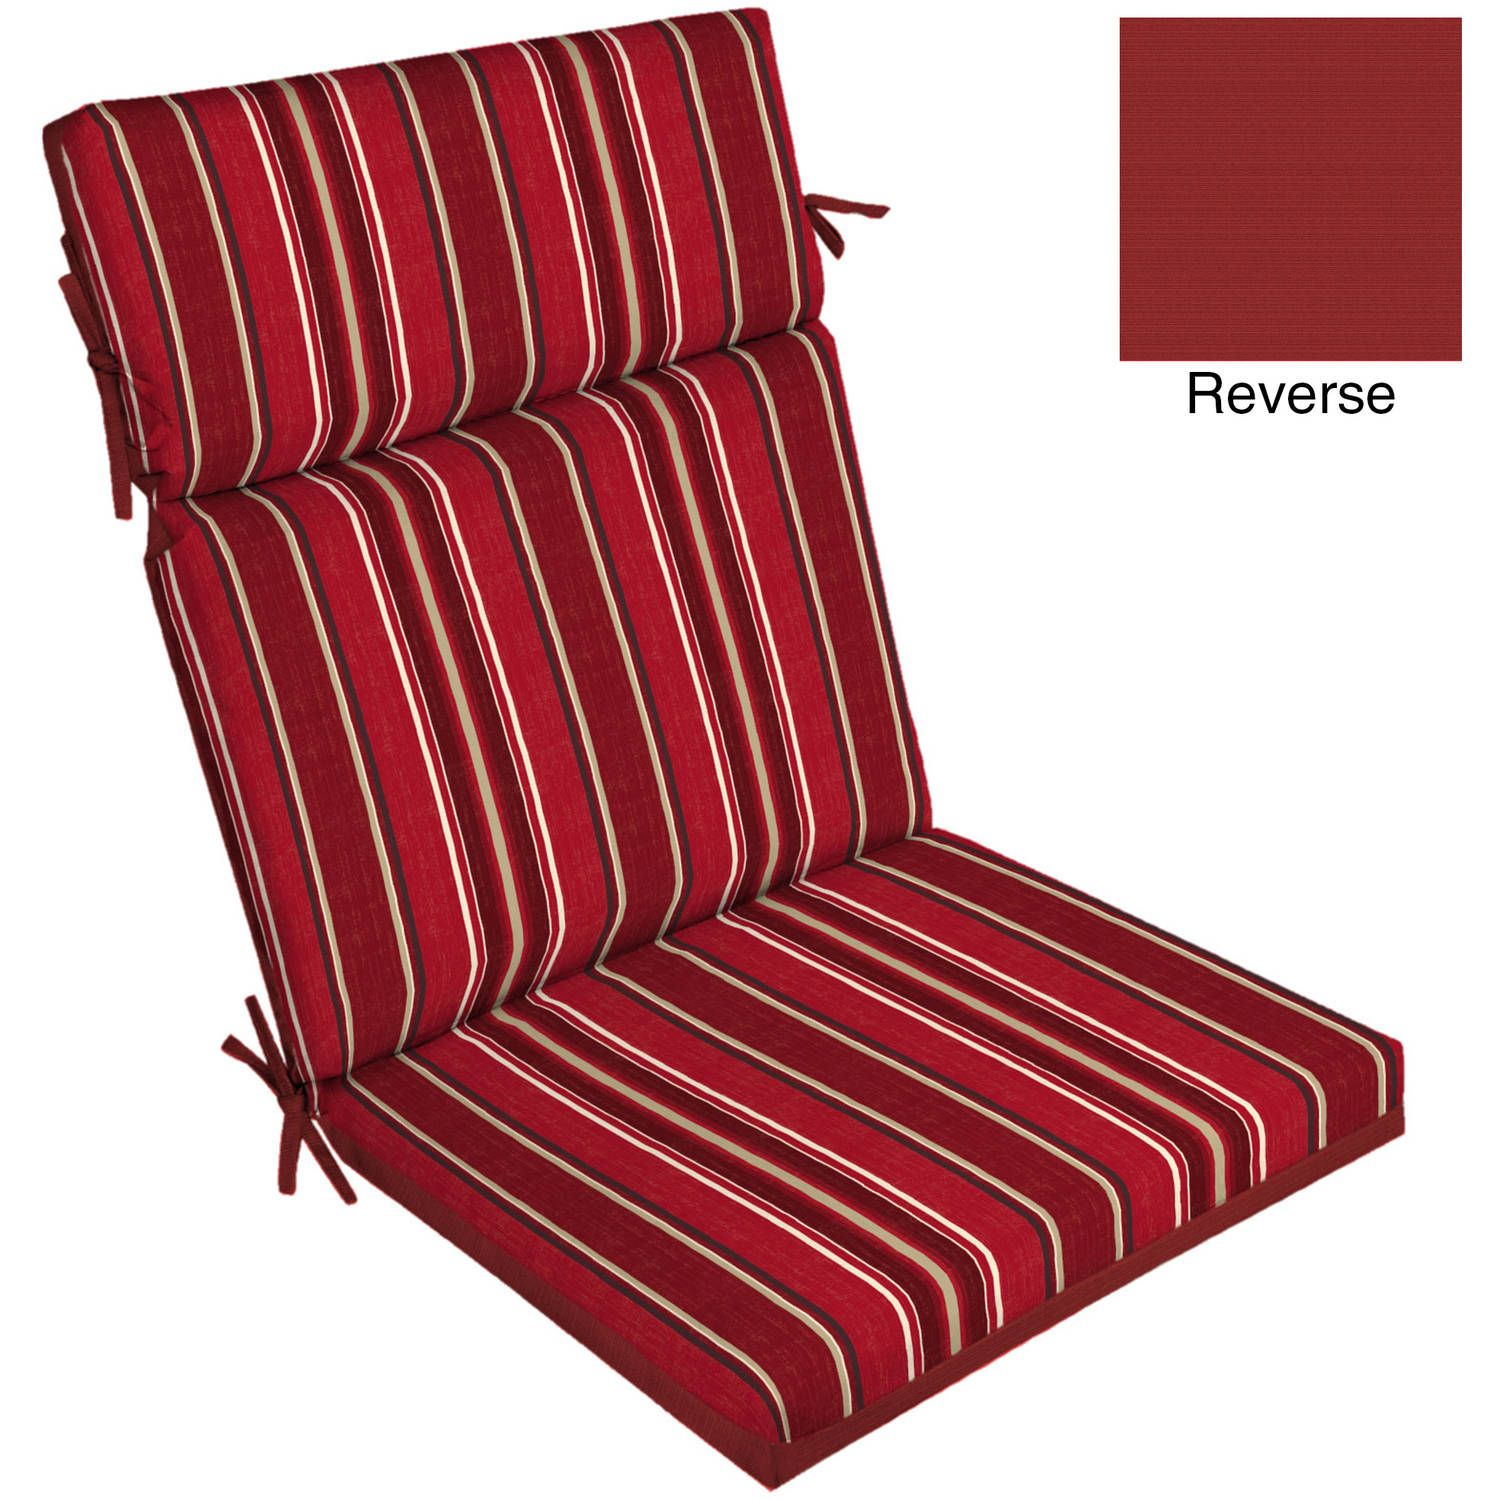 Hampton Bay Cushions Replacement Outdoor patio chair